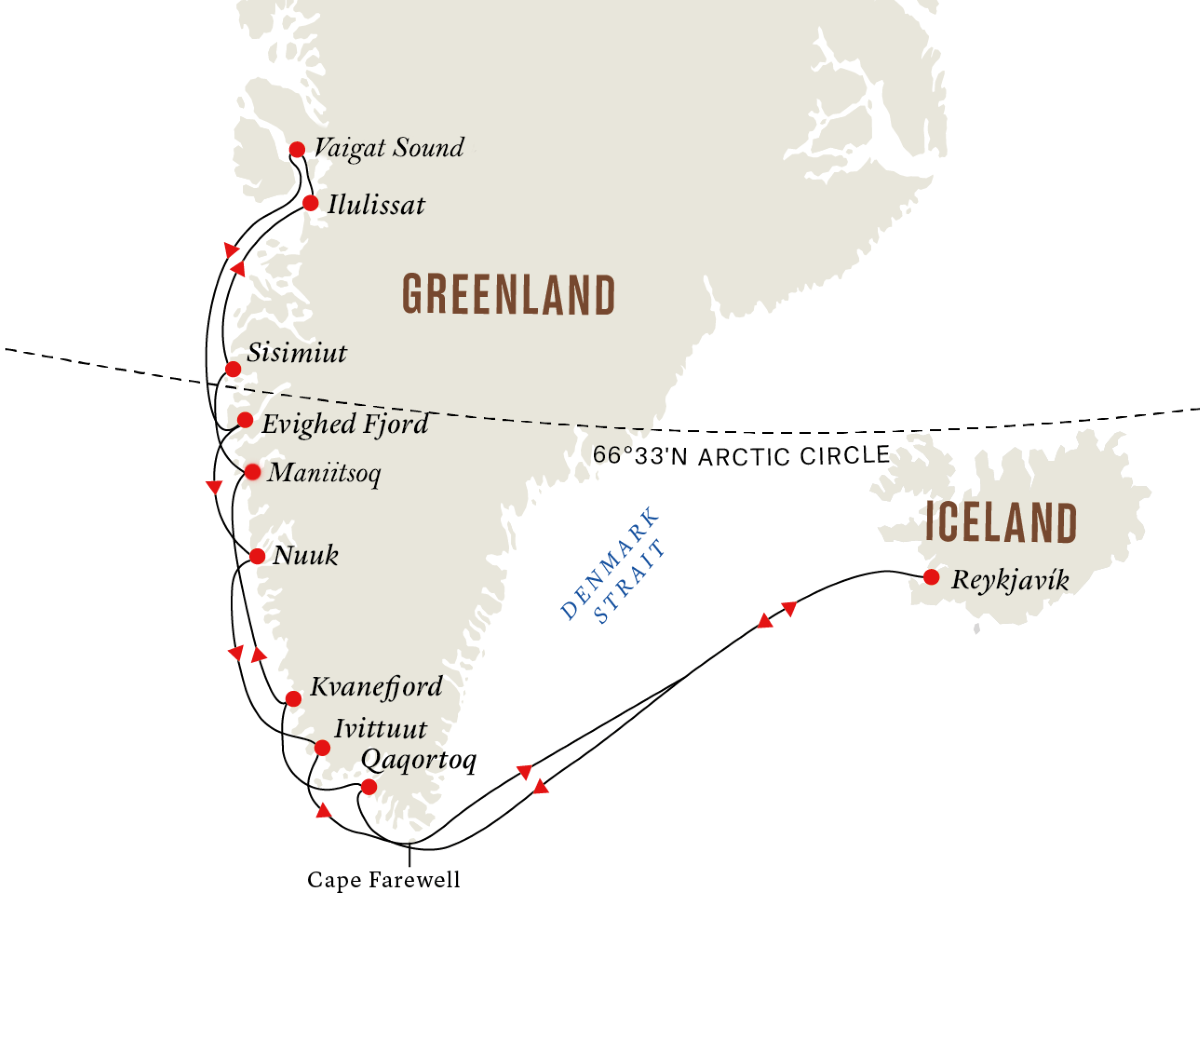 Disko Bay – The Heart of Greenland